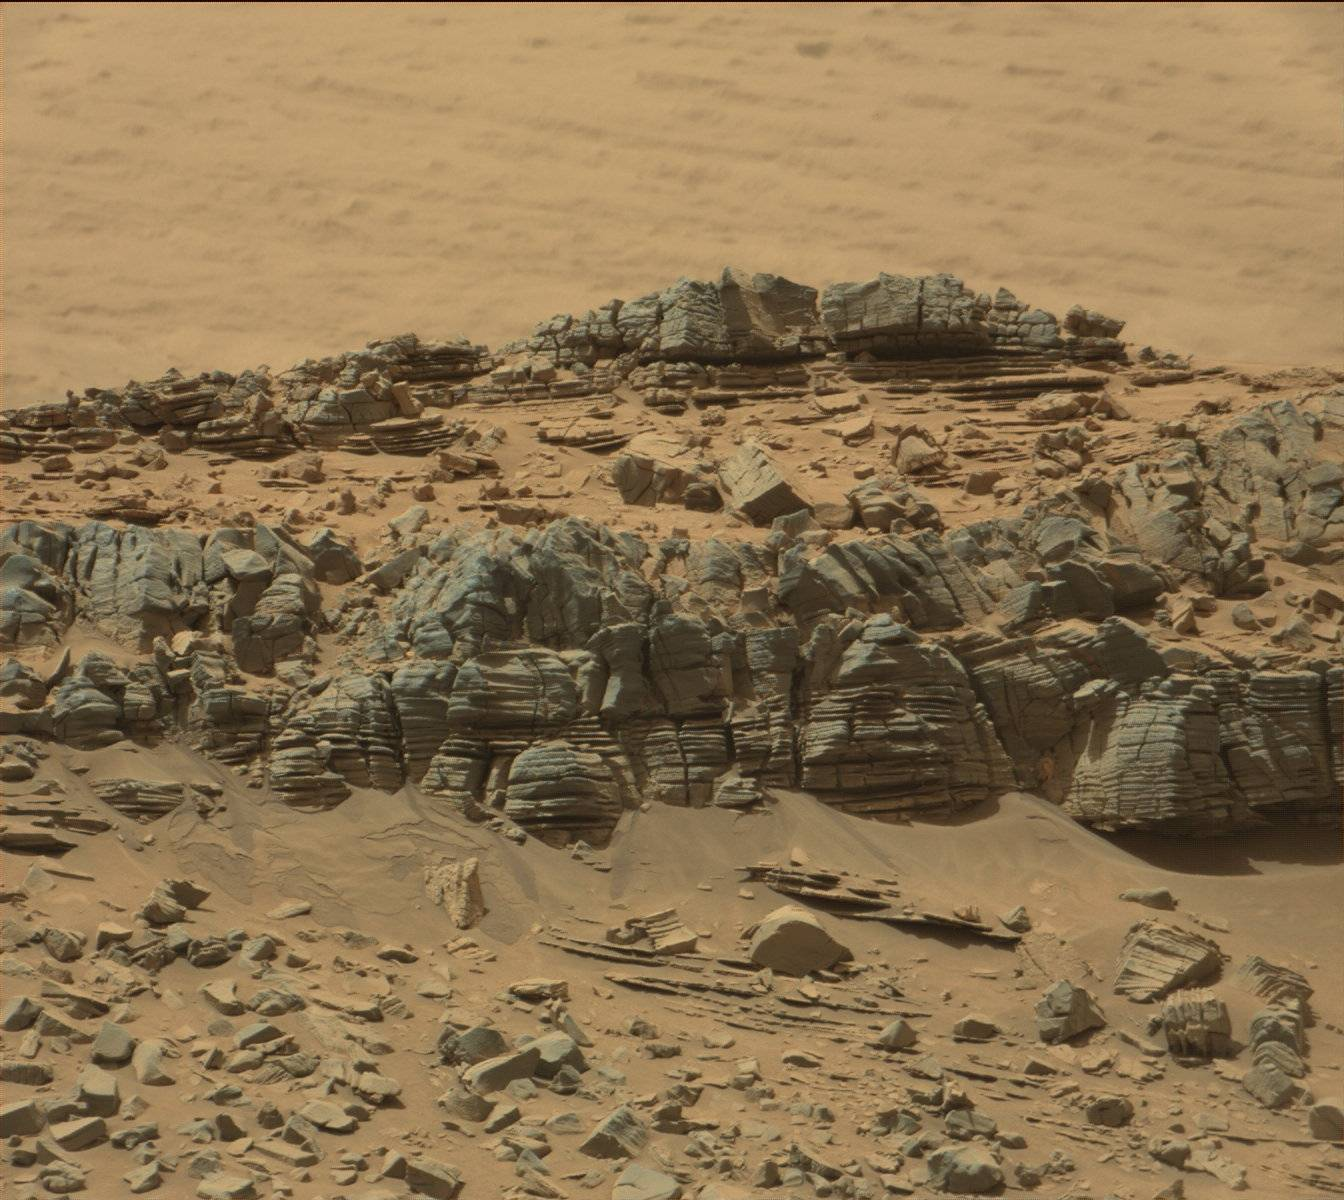 mars rover creature - photo #4